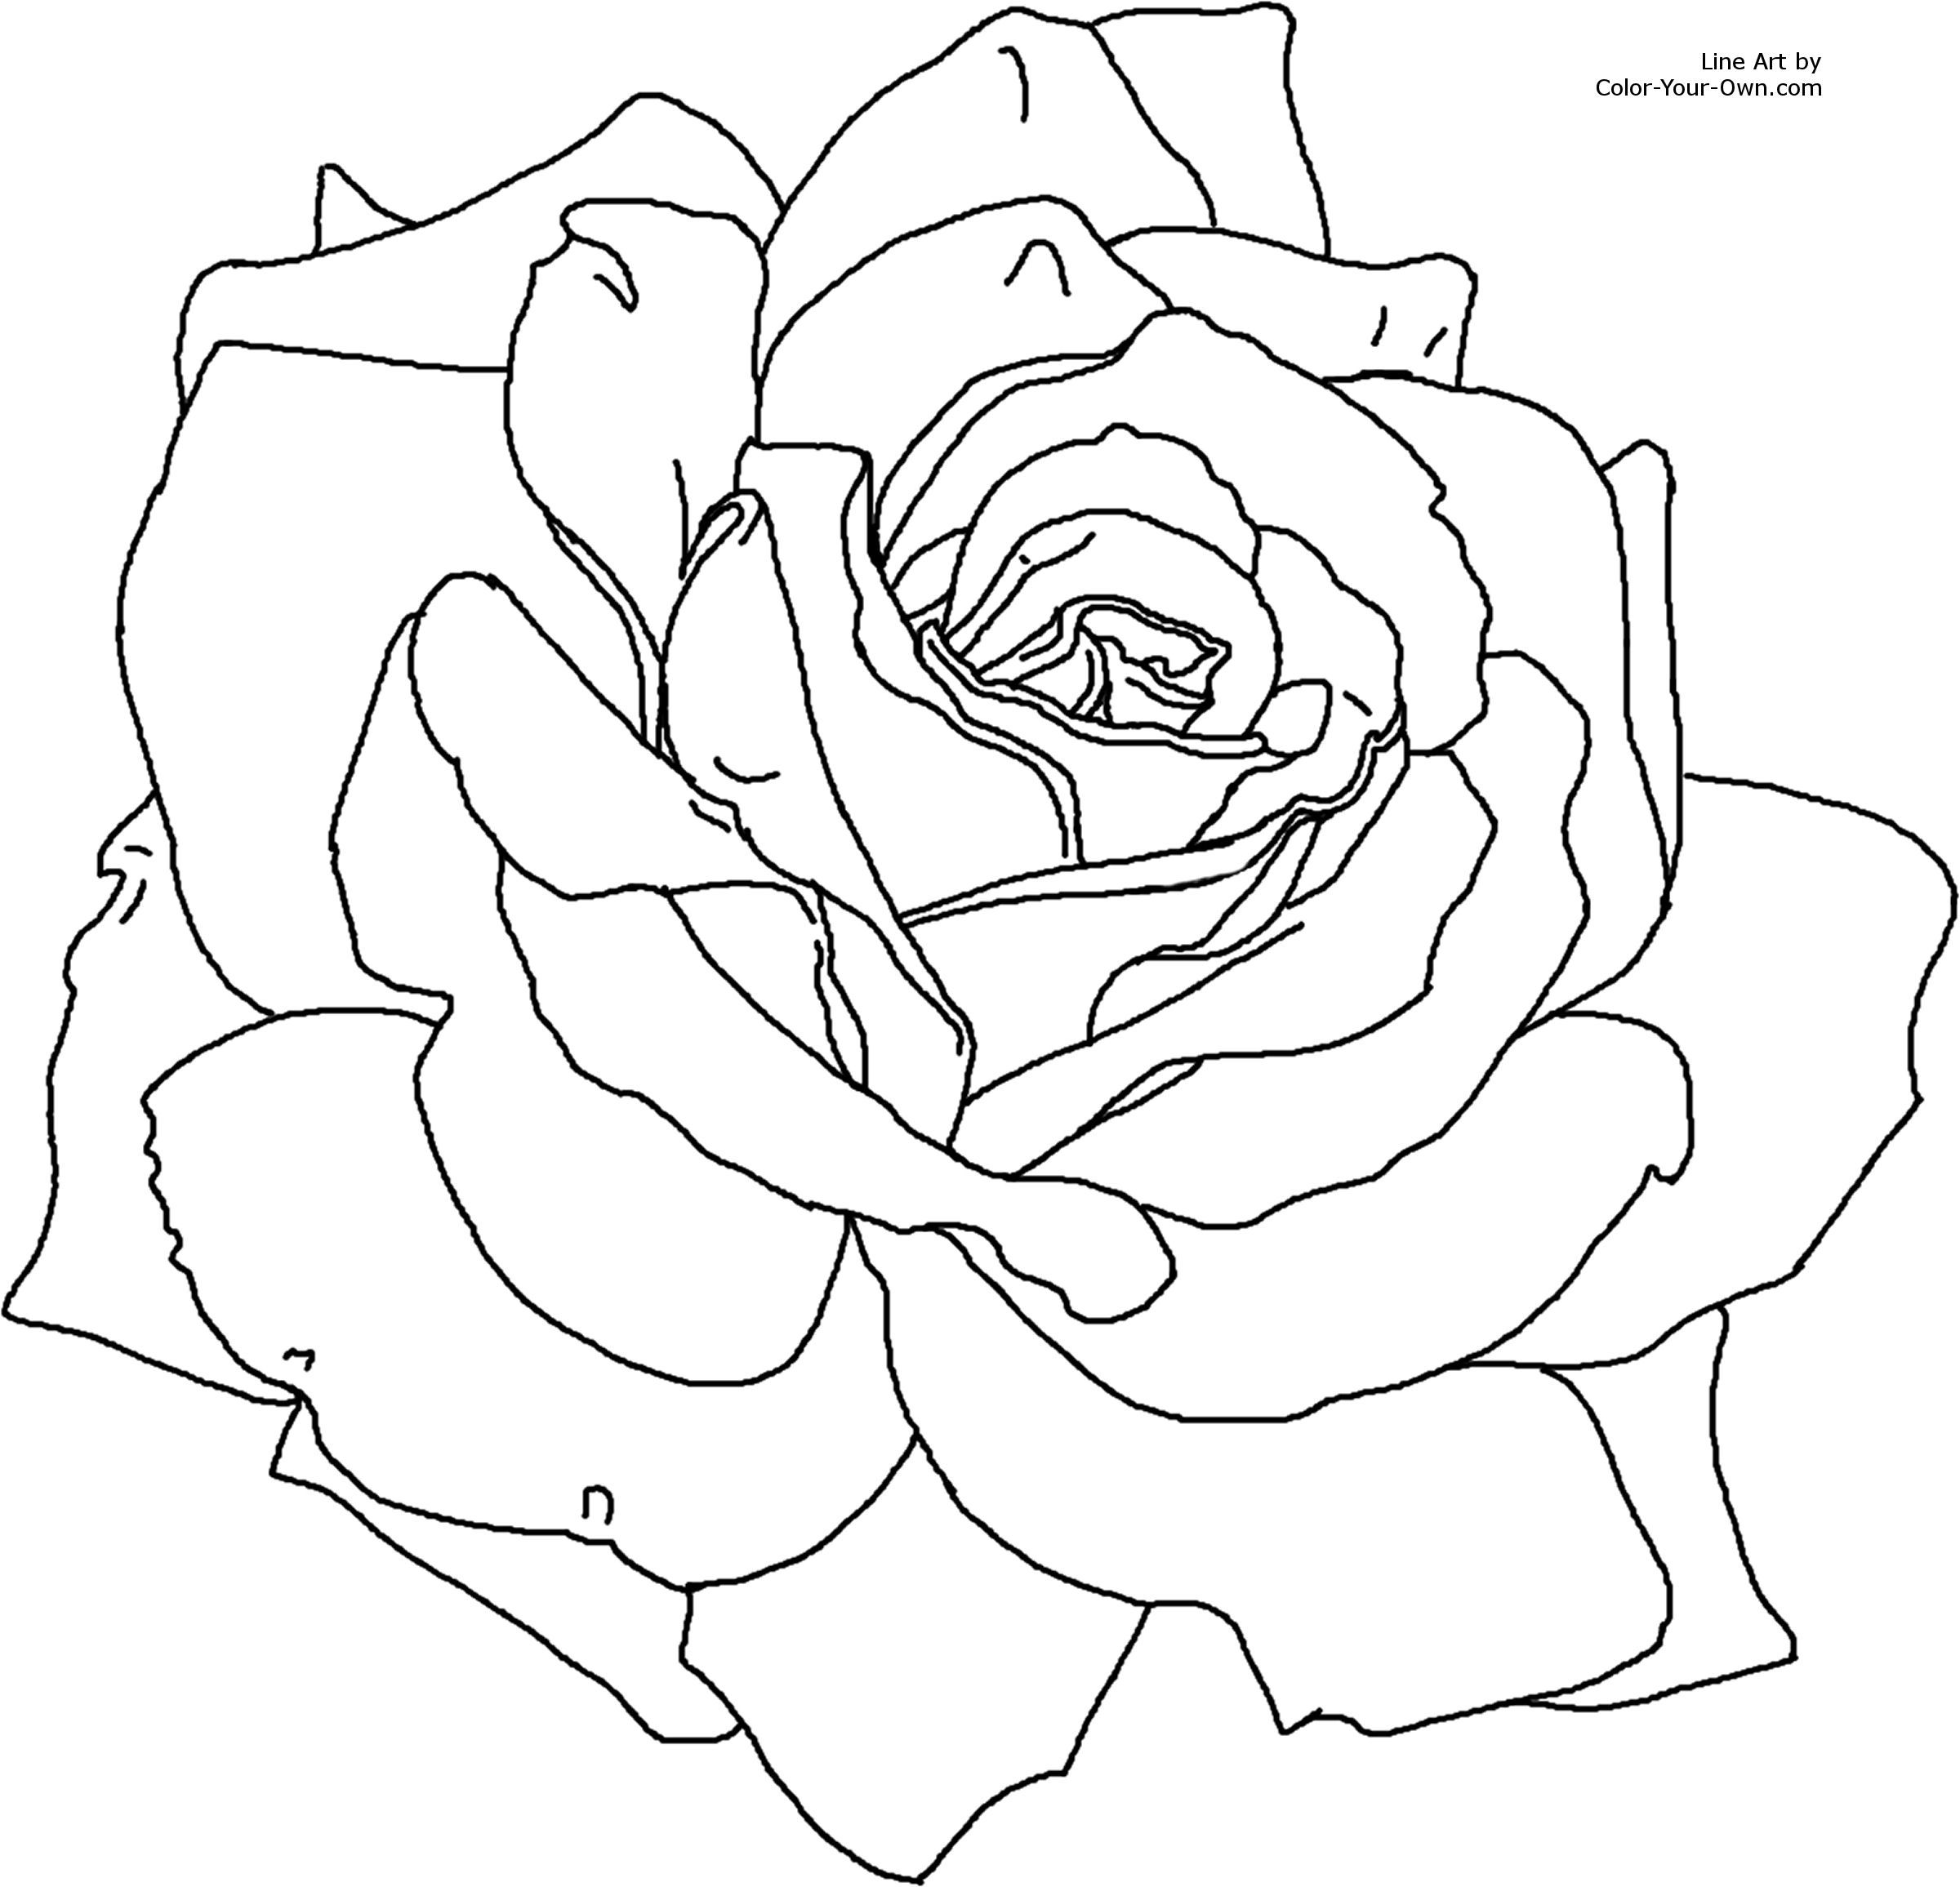 Flower coloring in pages - Flower Page Printable Coloring Sheets For The 8 5 X 11 Printable Size Click Here